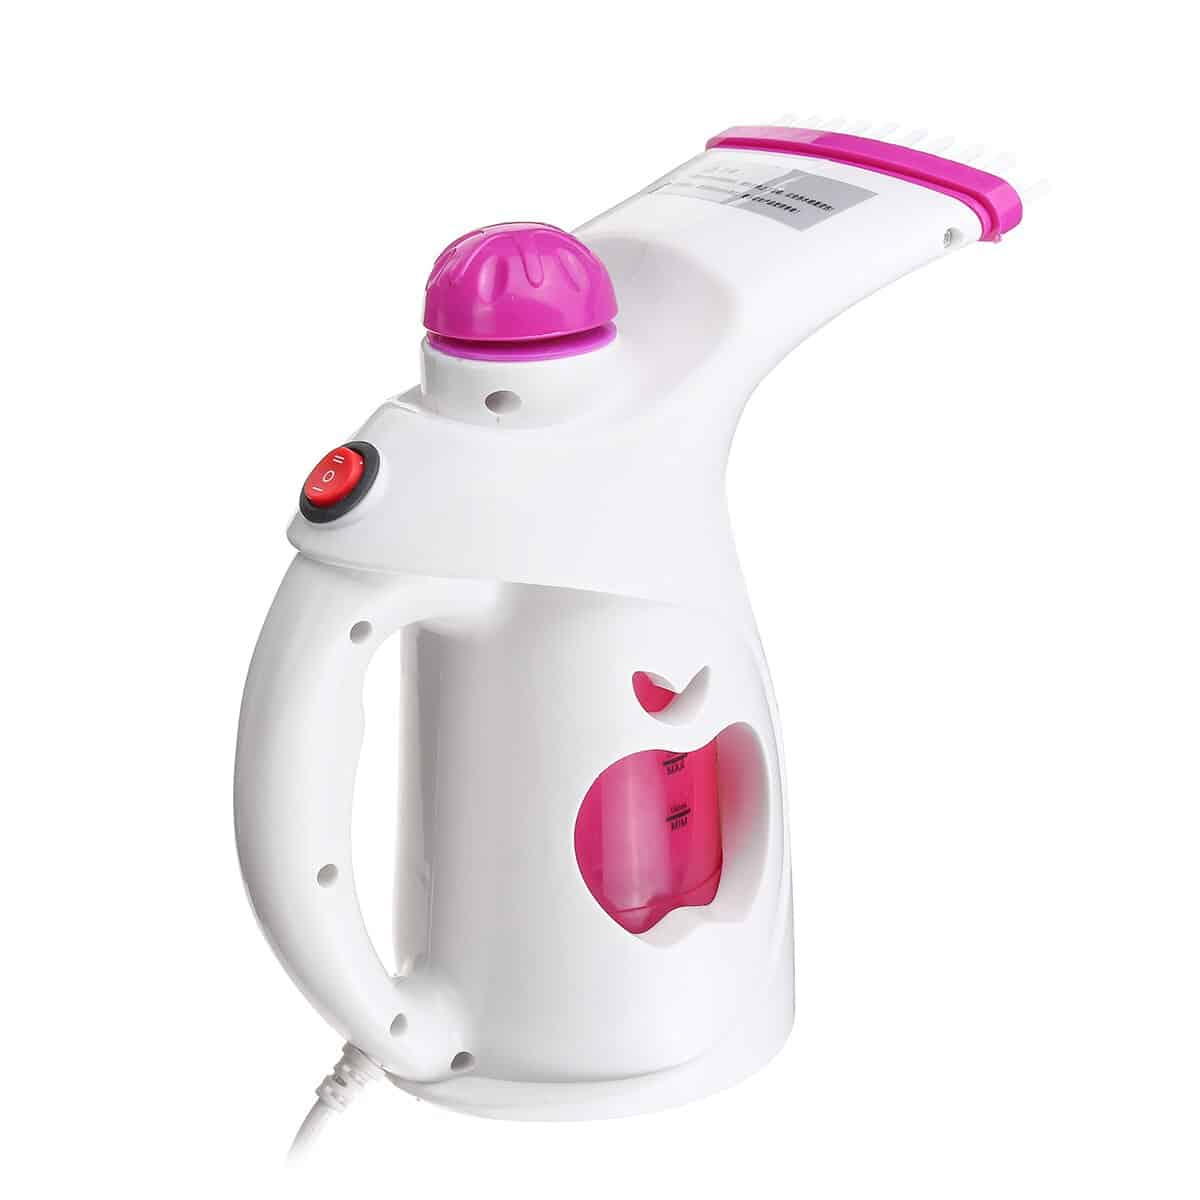 200ML Handheld Garment Steamer Mini Portable Clothes Steam Electric Iron For Household Humidifier Facial Steamer with Brush 4